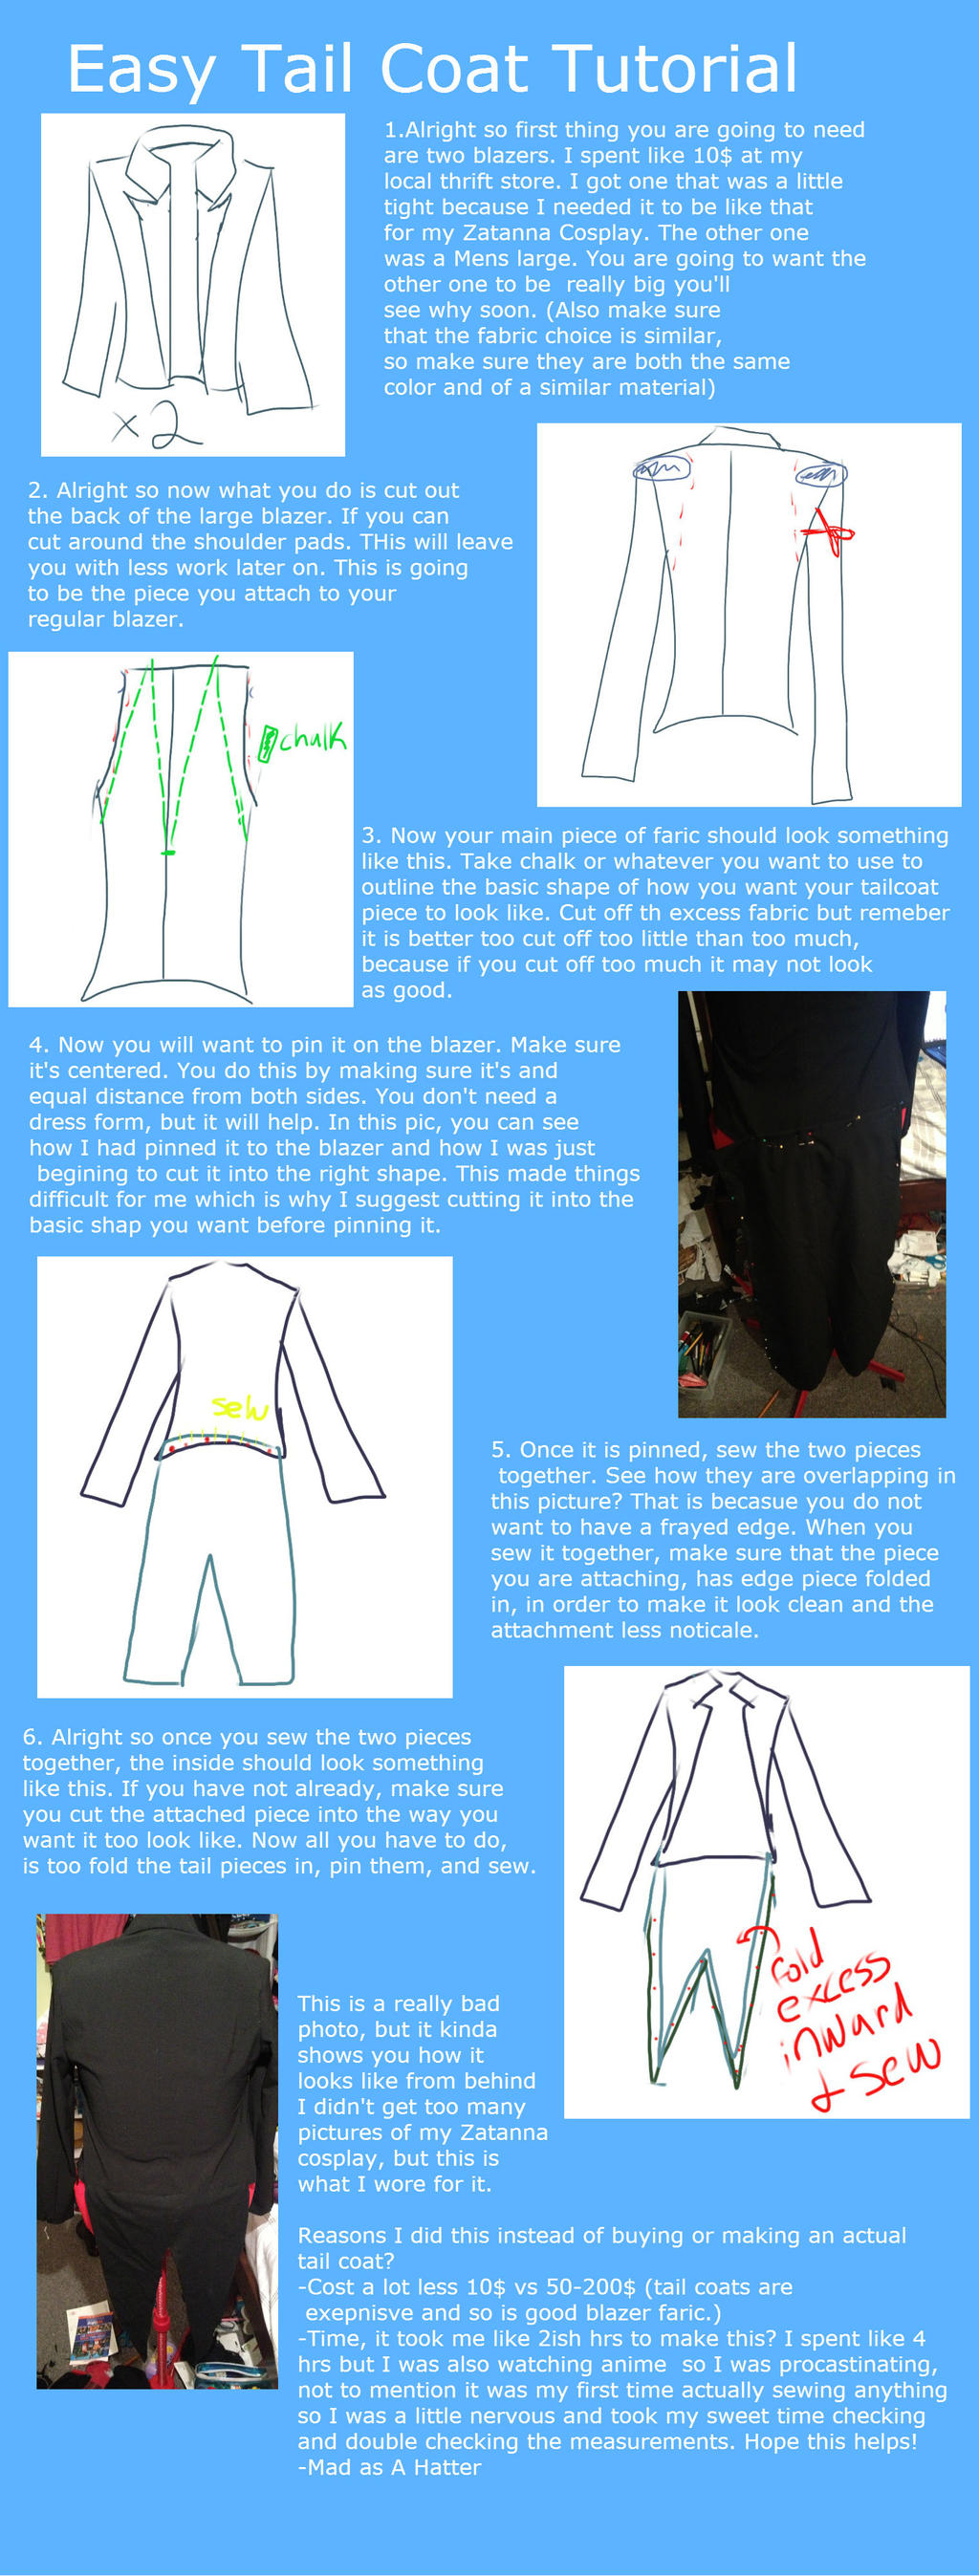 Easy Tail Coat tutorial by CaptainMadAsAHatter